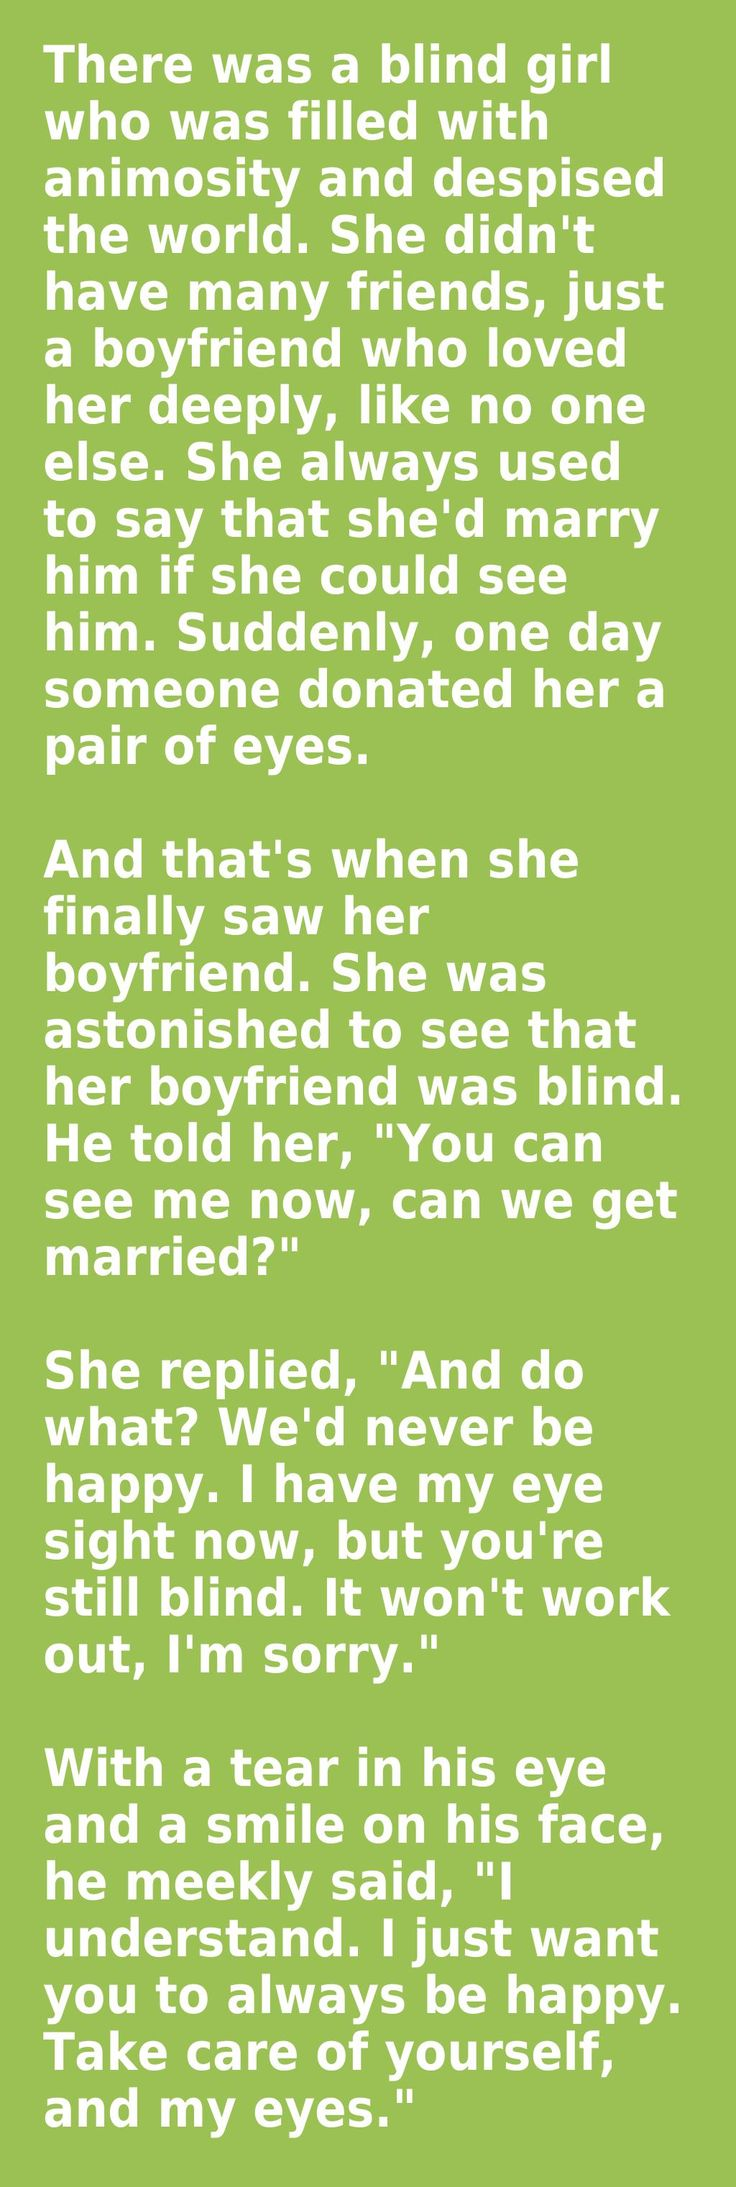 http://pinterestloveblog.blogspot.com/2014/07/50-ways-to-show-your-husband-you-love.html cute love quotes for him - love quotes for him cute - cute love quotes - cute love quotes and sayings - boyfriend love quotes - love quotes for boyfriend - love quotes for your boyfriend - husband love quotes - love quotes for husband - love quotes for your husband